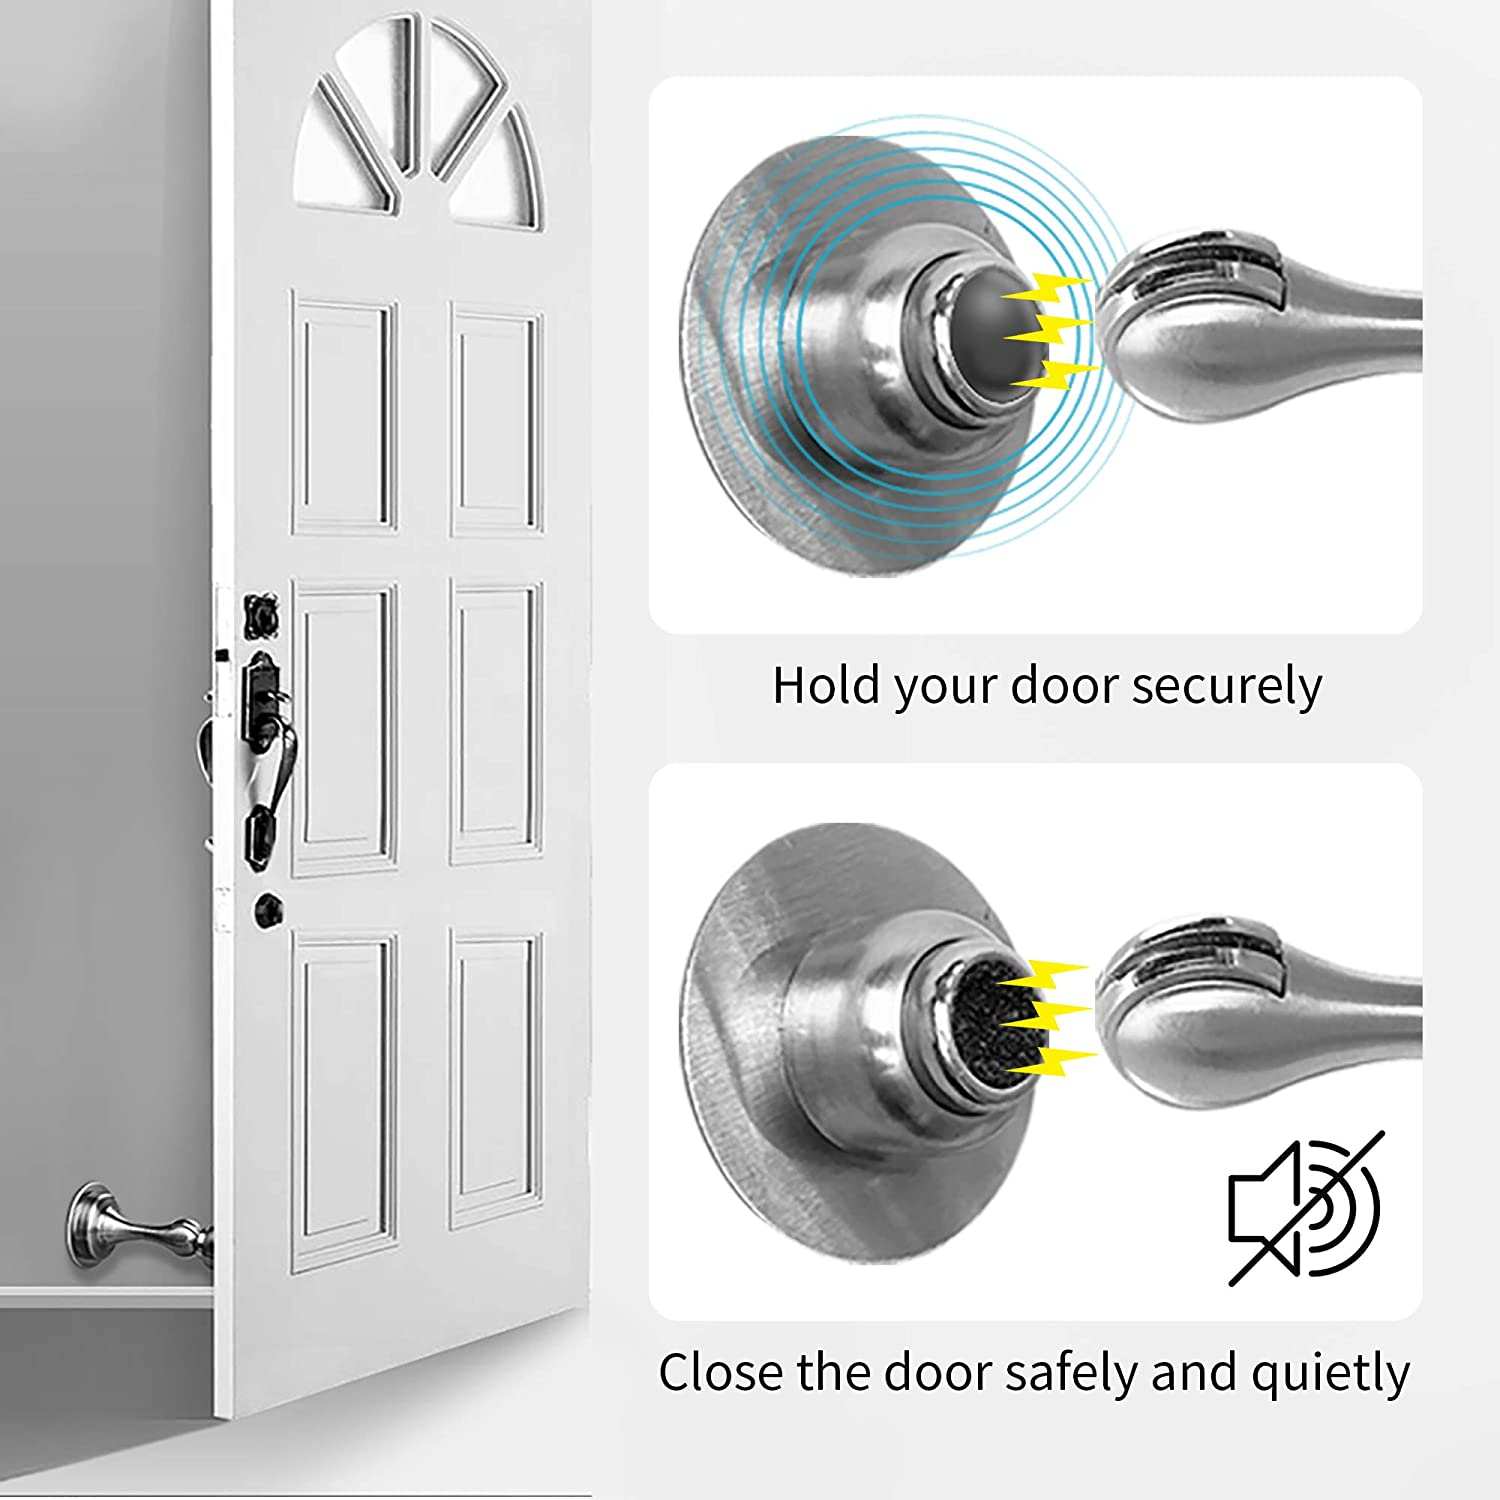 2 Pack Stainless Steel Magnetic Door Stop and Catch Include 3M Double-Sided Adhesive Tape and Mute Sticker for Keep Your Door Open and Wall Mount Door Holder Perfin Door Stopper